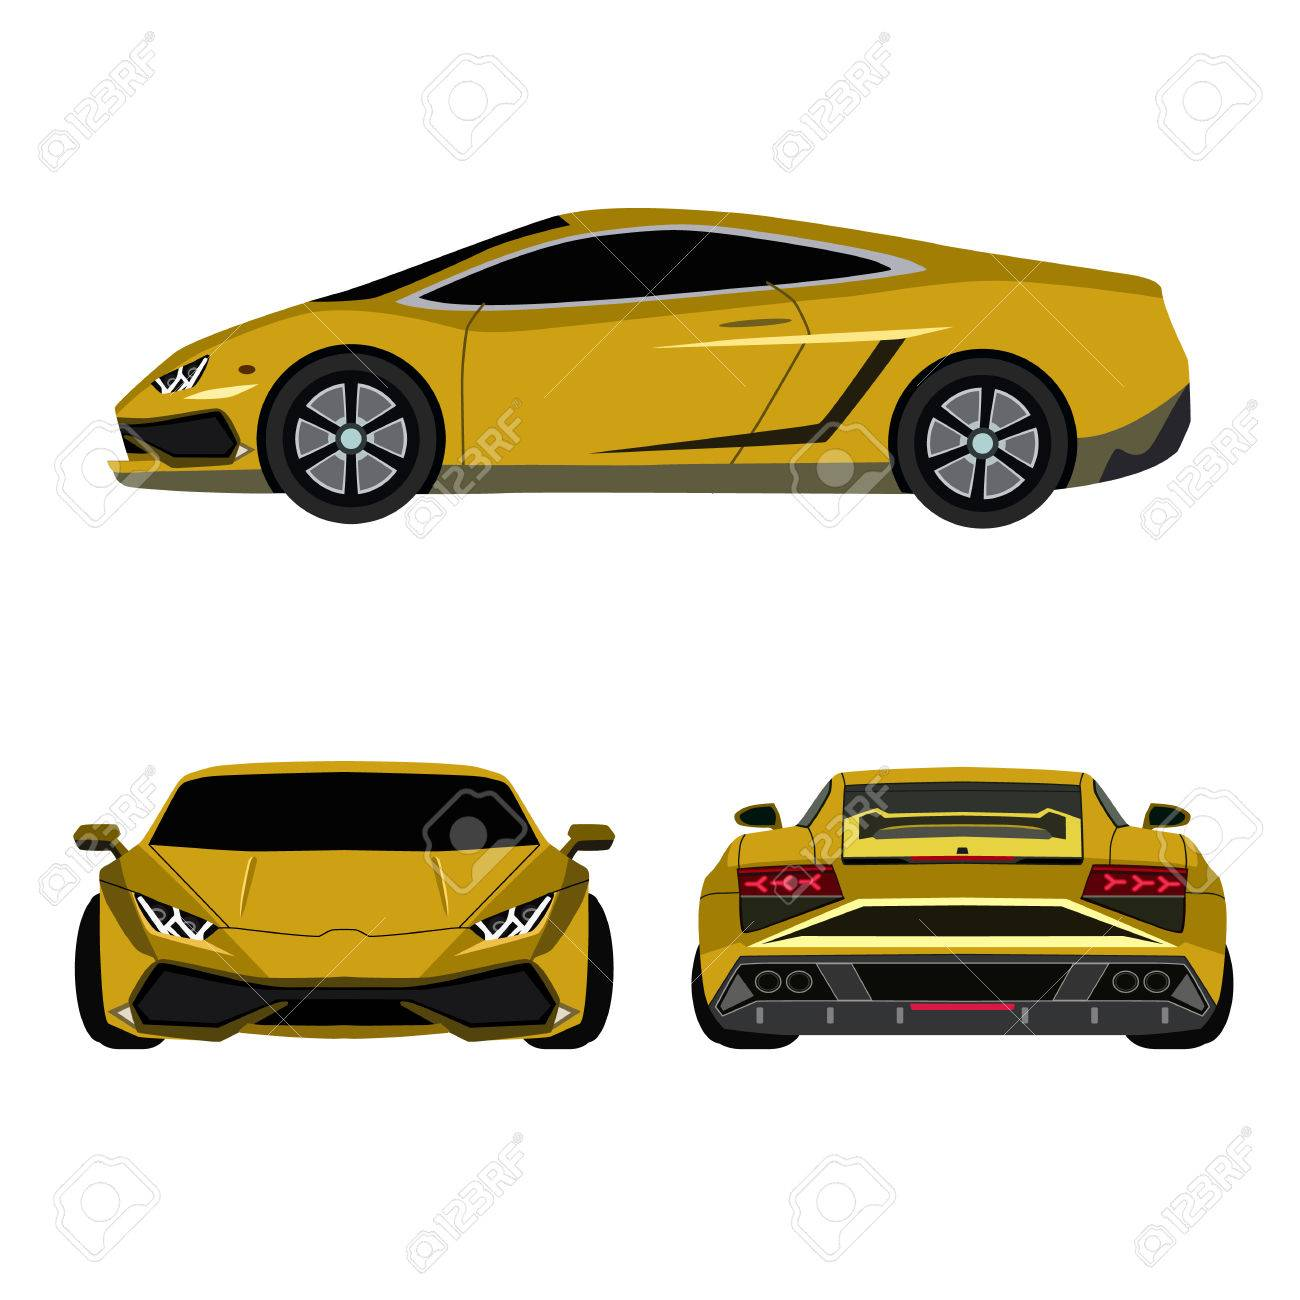 Super Car Flat Icon Royalty Free Cliparts Vectors And Stock